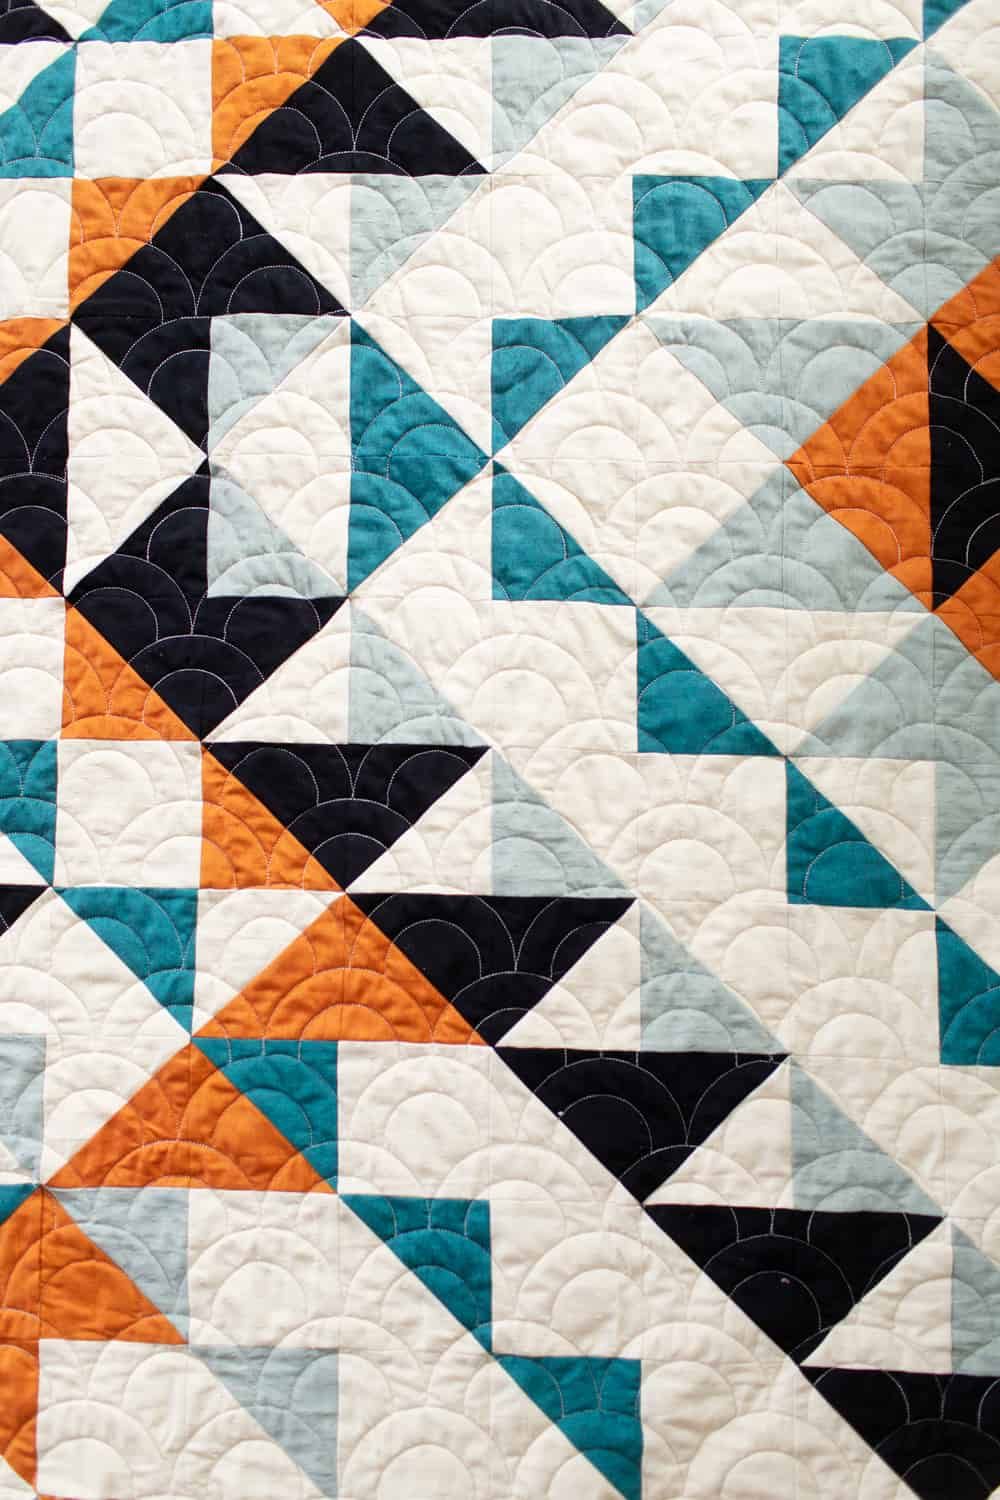 Black and white half square triangles - Odyssey quilt pattern from Wren Collective002